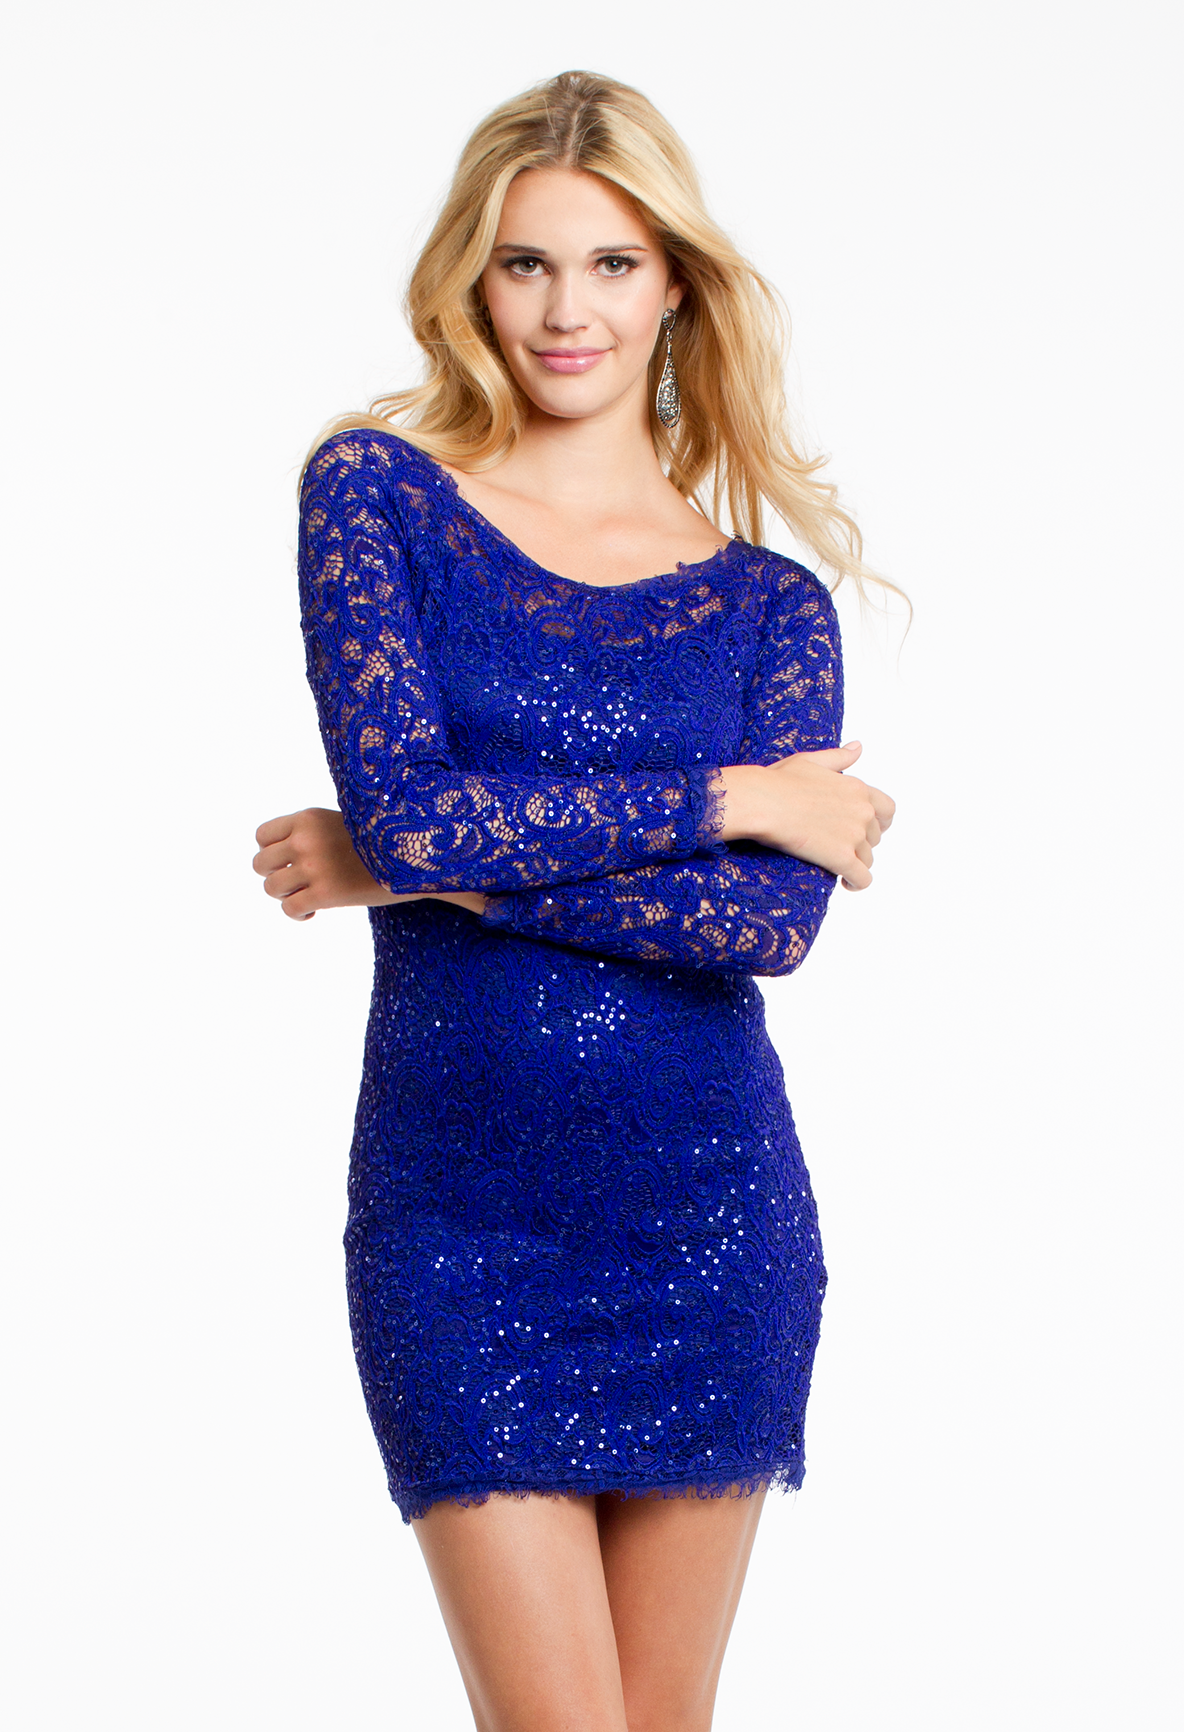 Long Sleeve Sequin Lace Dress #camillelavie | PARTY HARDY | Pinterest